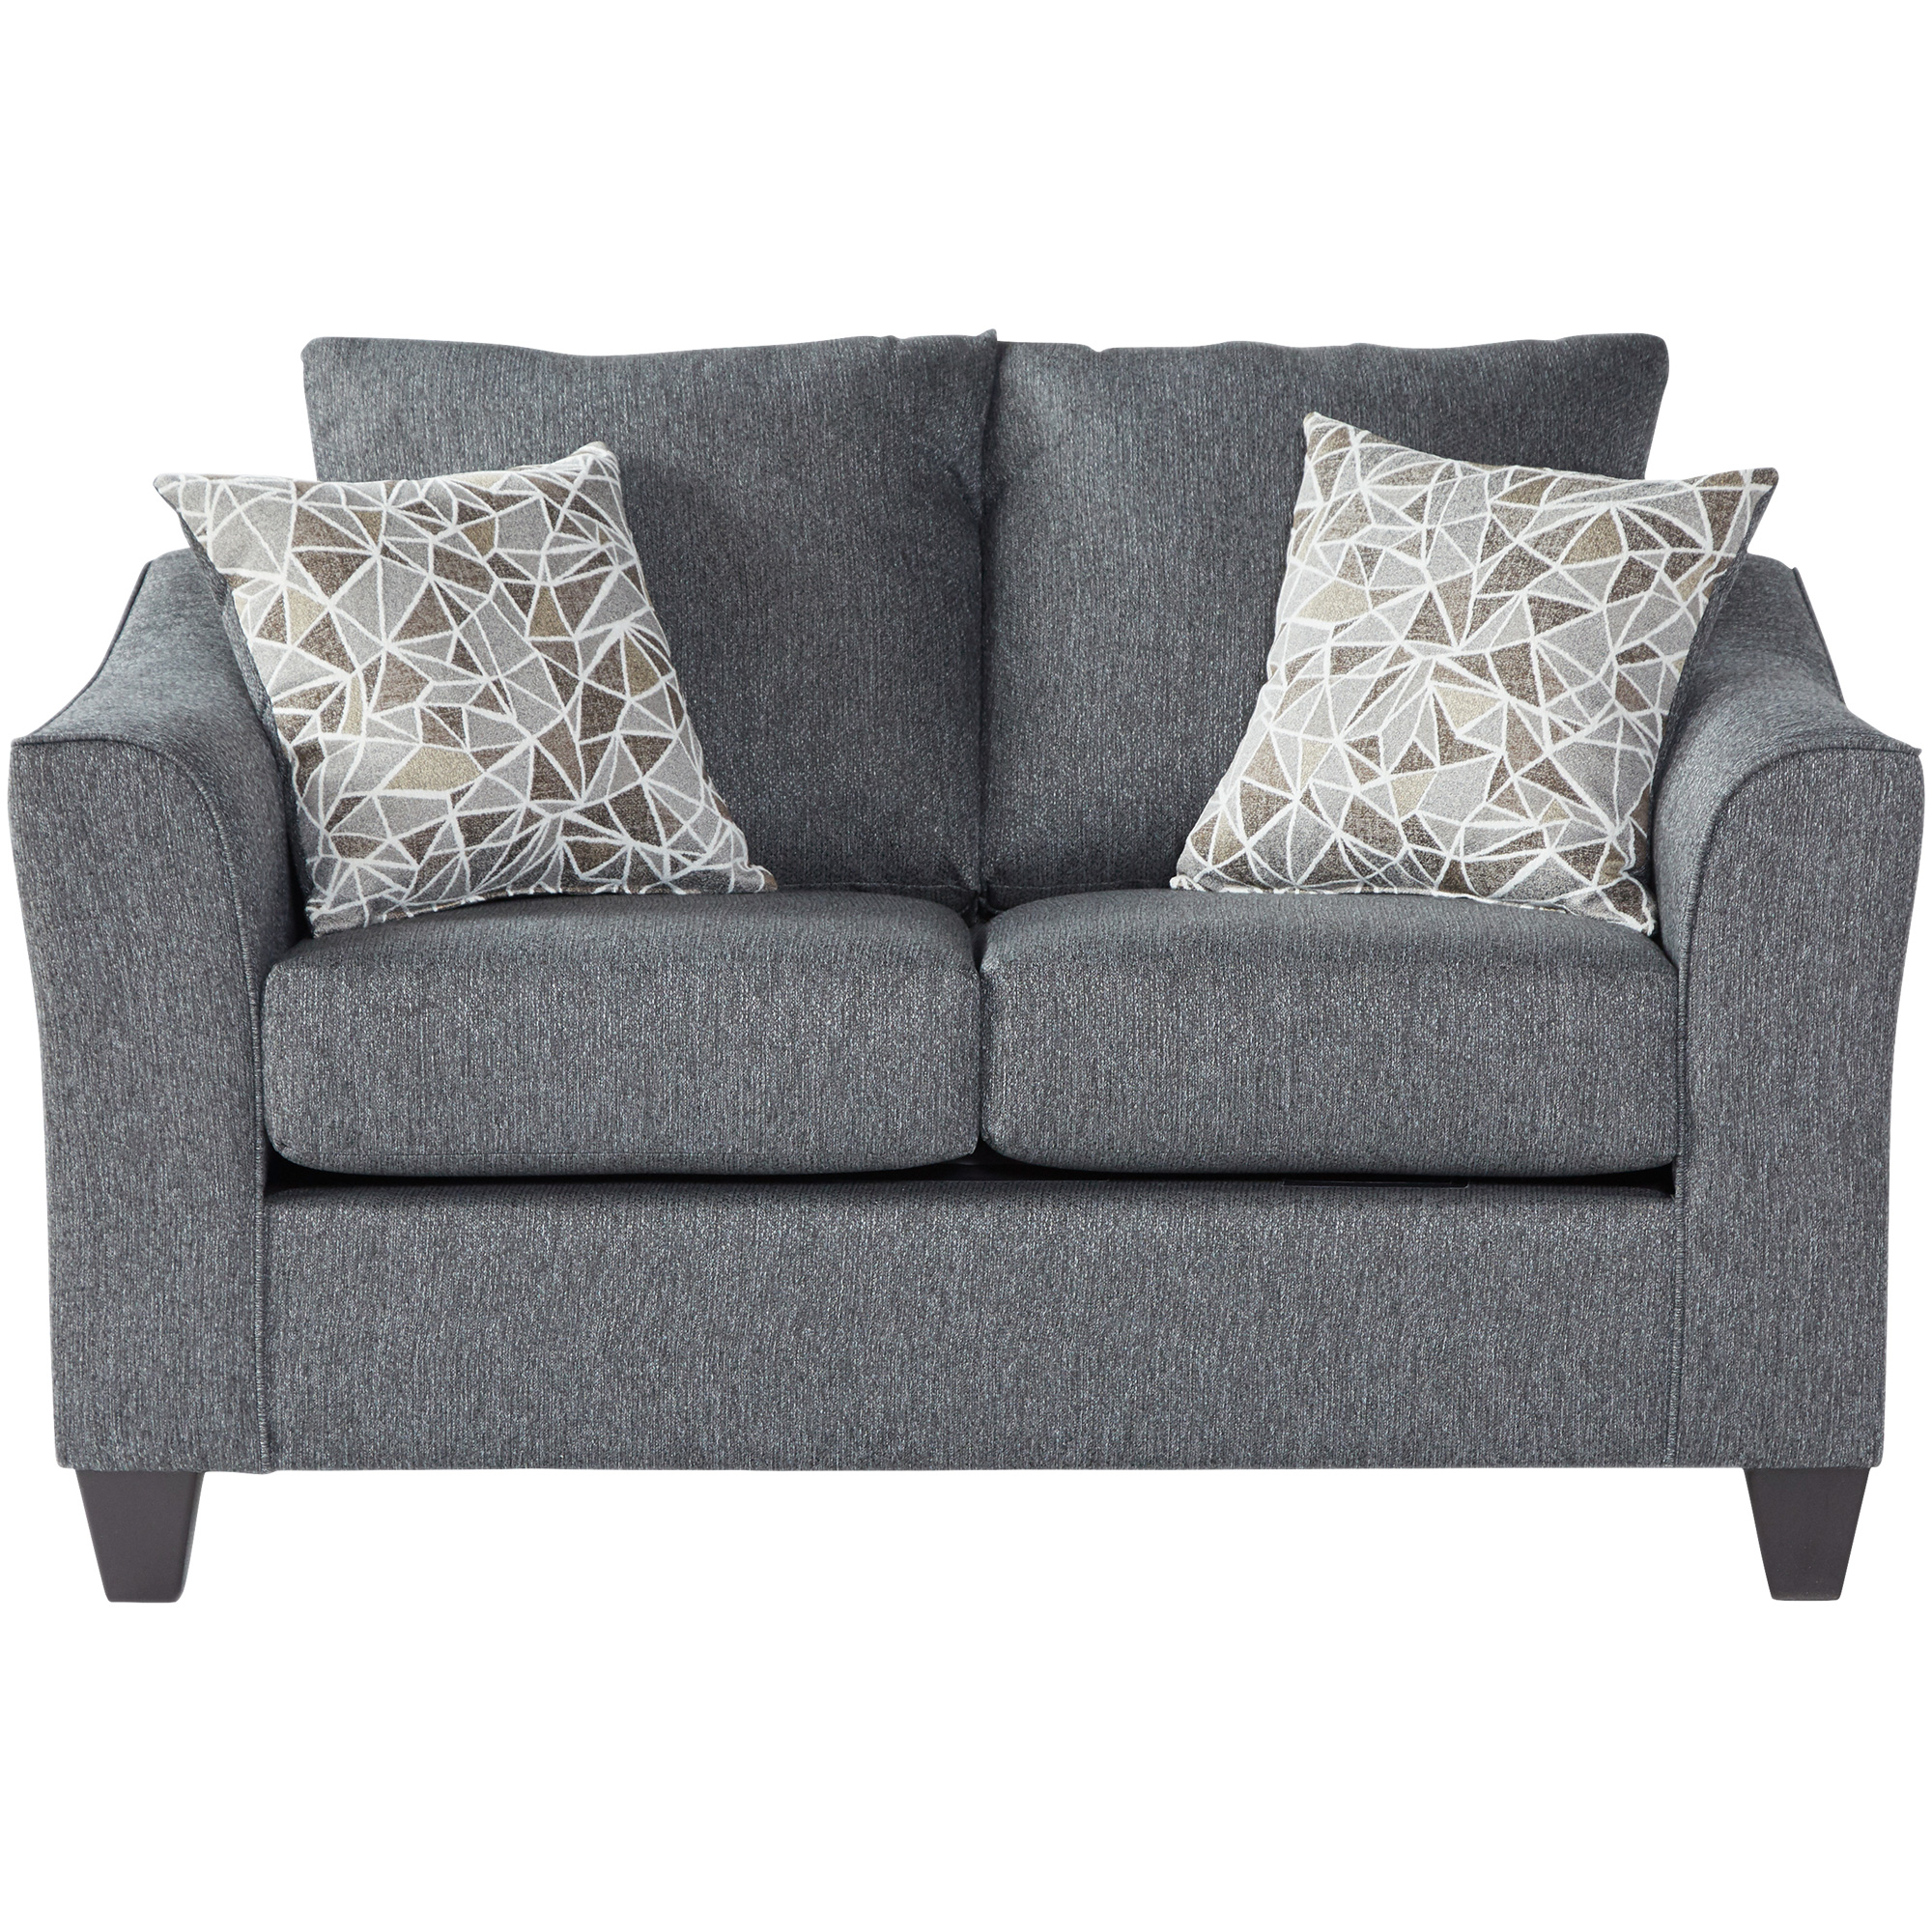 Serta Upholstery By Hughes Furniture | Bolt Granite Loveseat Sofa